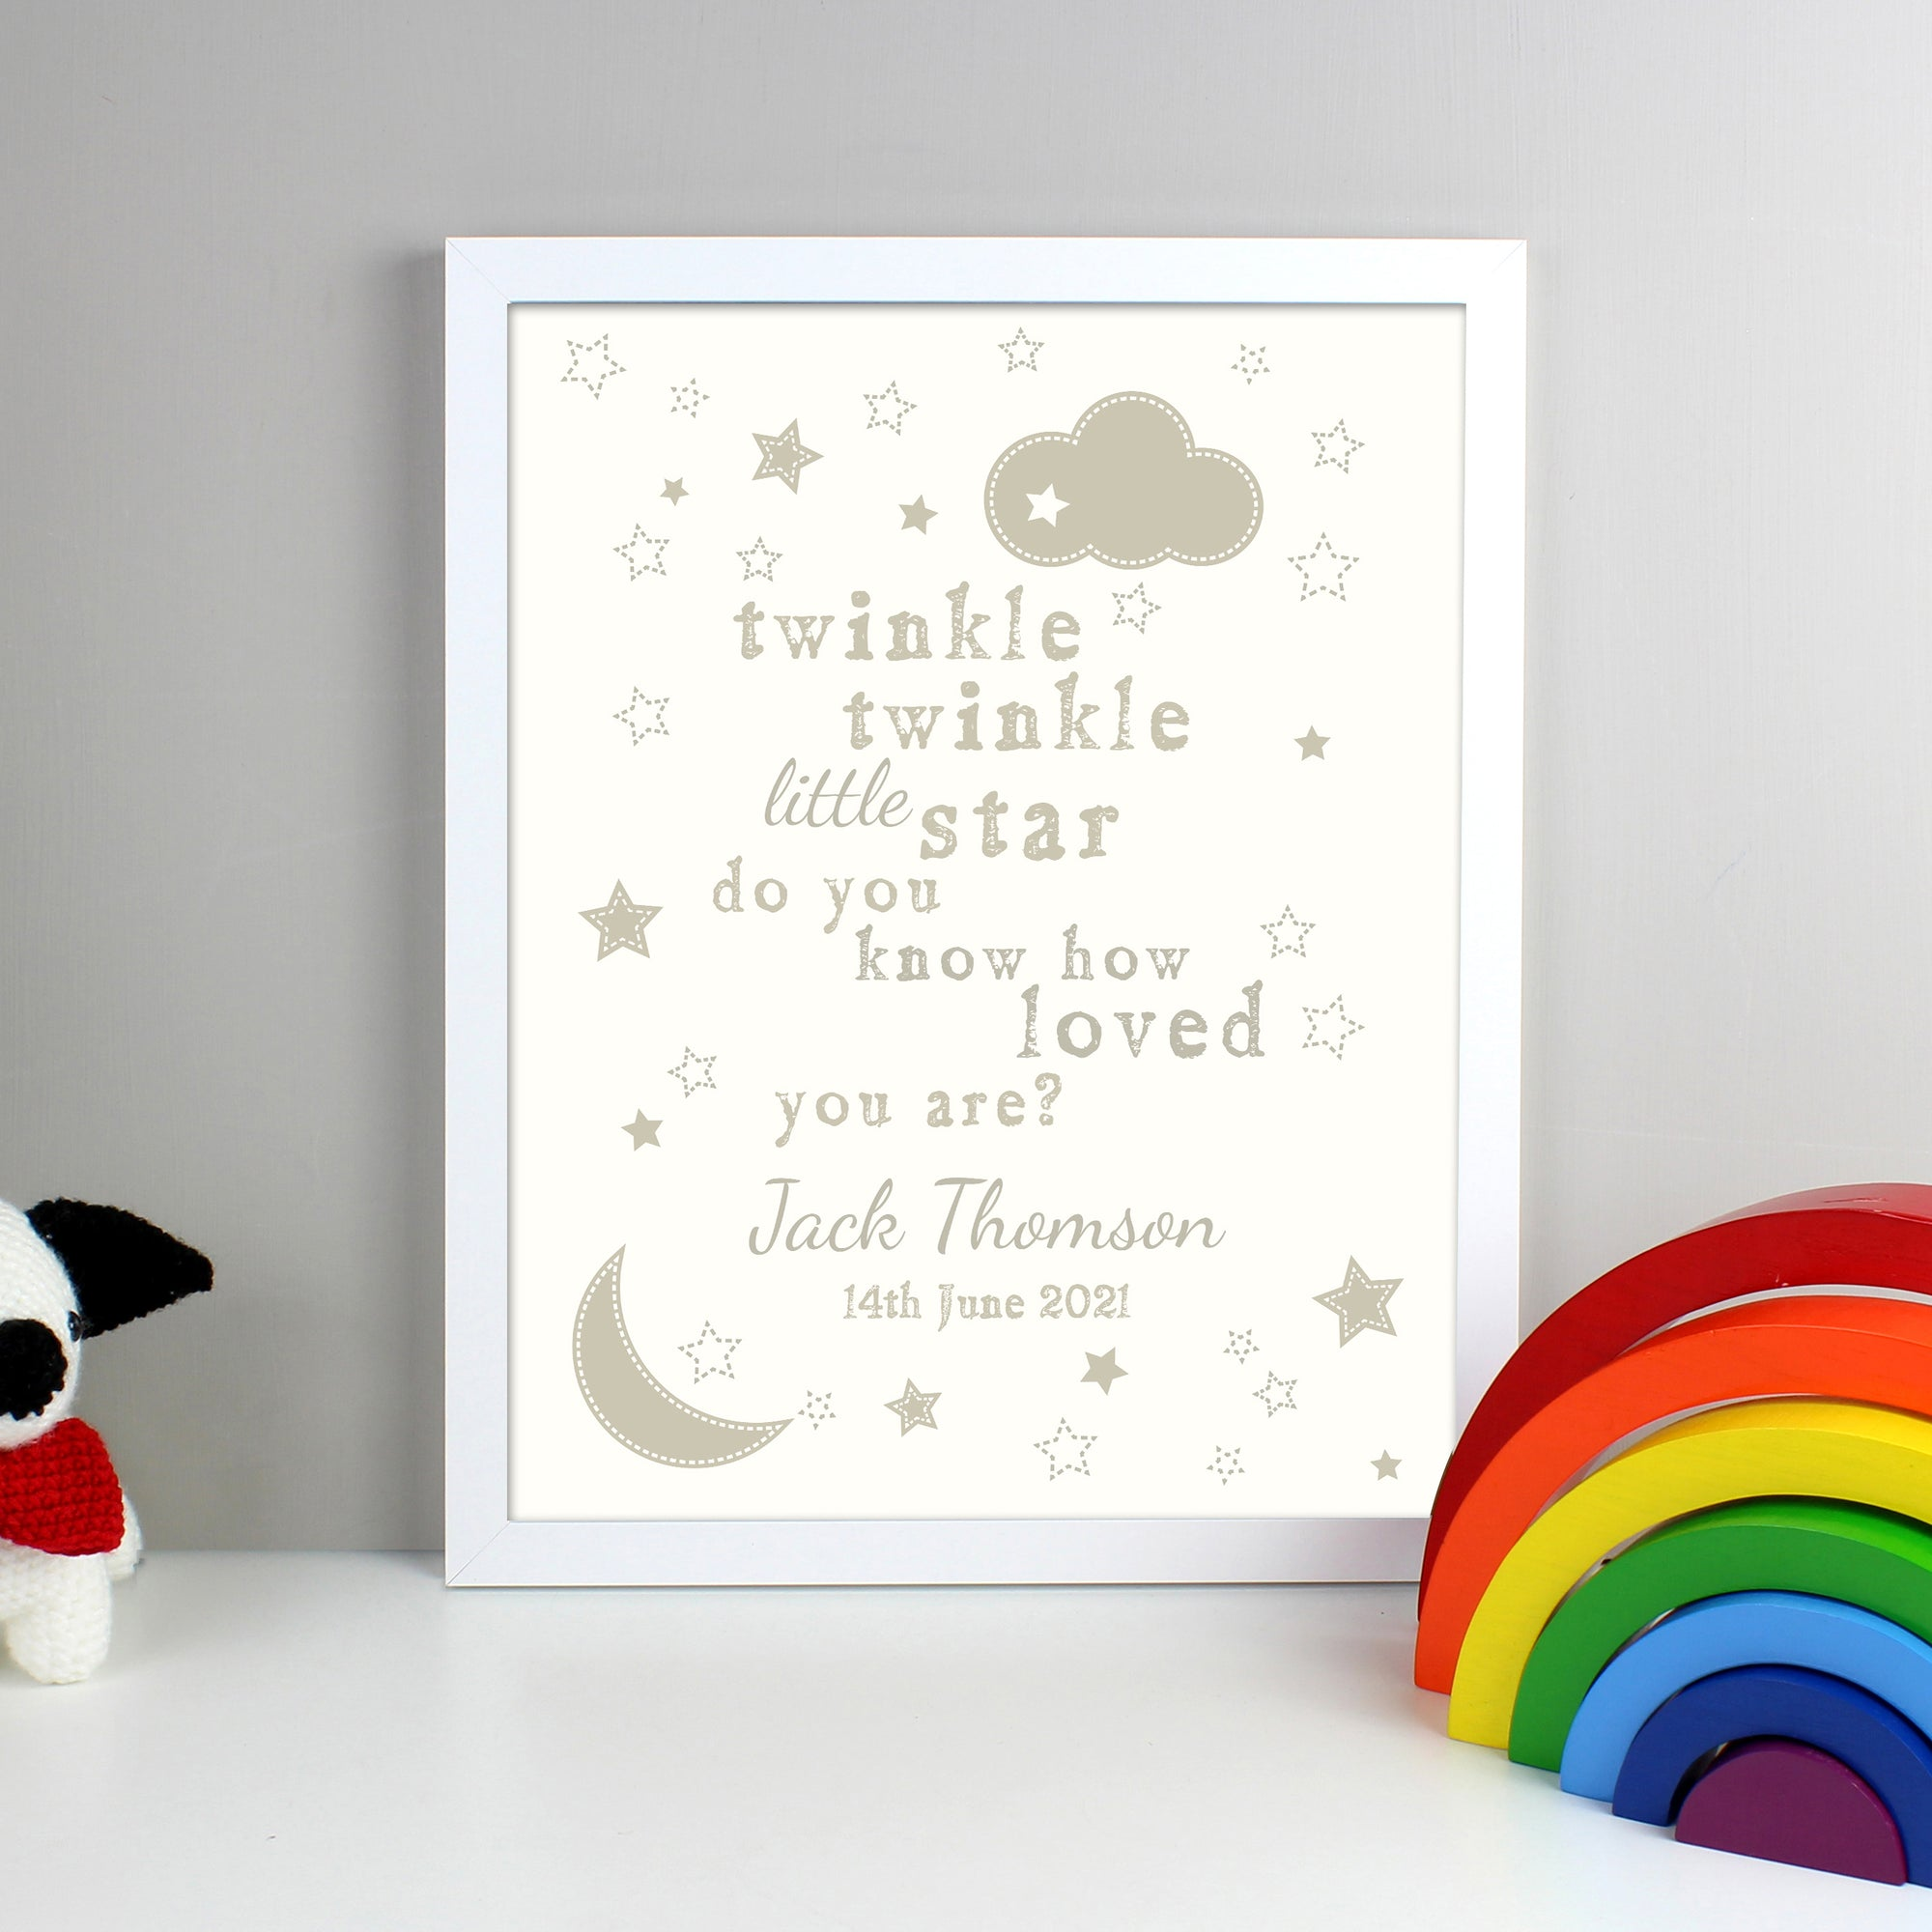 Personalised framed print with the wording 'Twinkle twinkle little star do you know how loved you are' printed in different sizes and fonts in grey on a white background. There are smaller illustrations of clouds and stars throughout the print.  The print can then be personalised with a name and a special message of your own or birth details. The print comes in a white frame.